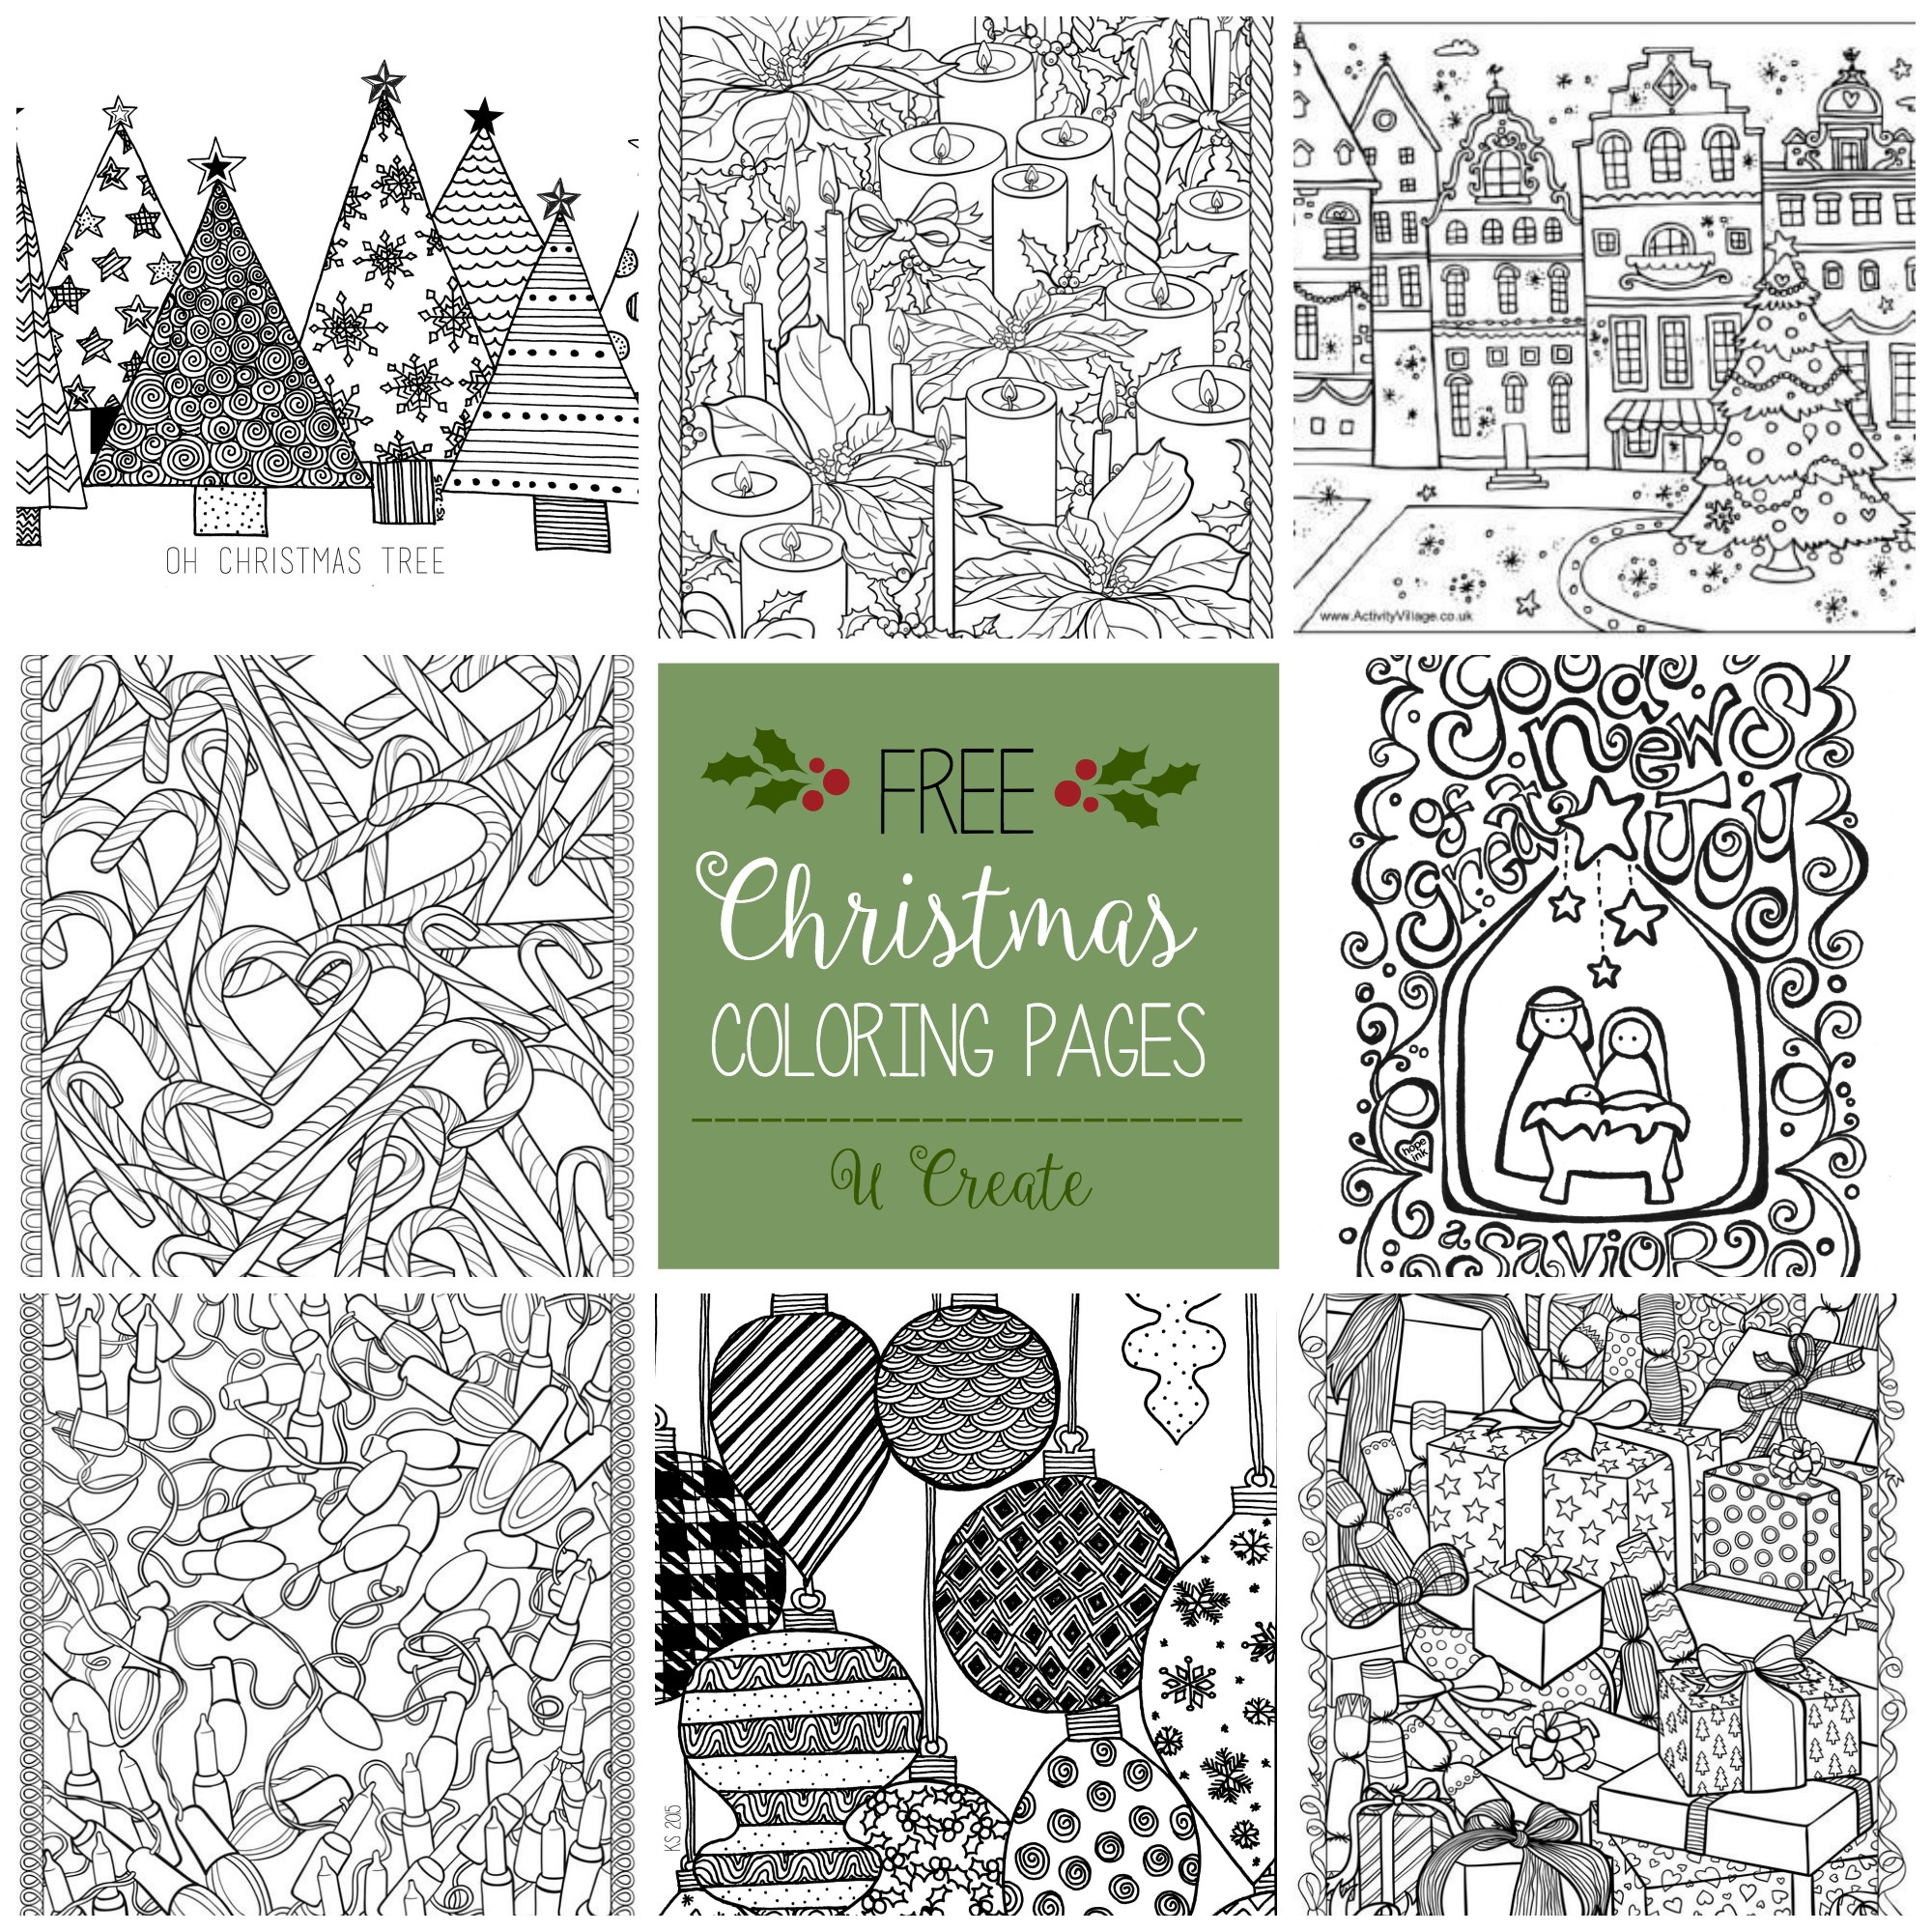 free christmas adult coloring pages u create - Christmas Coloring Pages For Adults